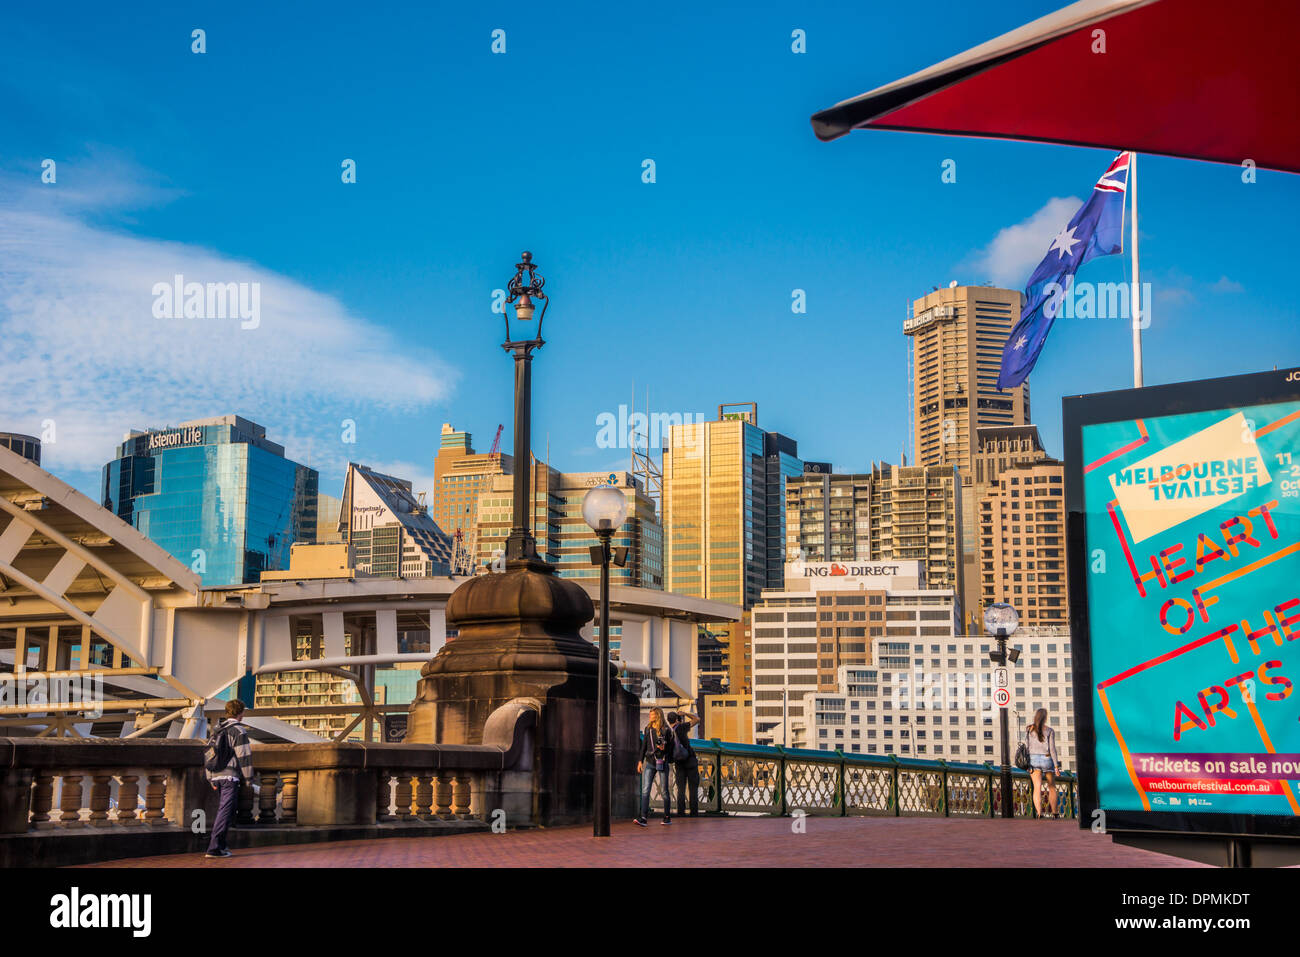 Pyrmont Bridge, is one of the oldest surviving electrically operated Swingspan , Darling Harbour, Sydney, Australia - Stock Image